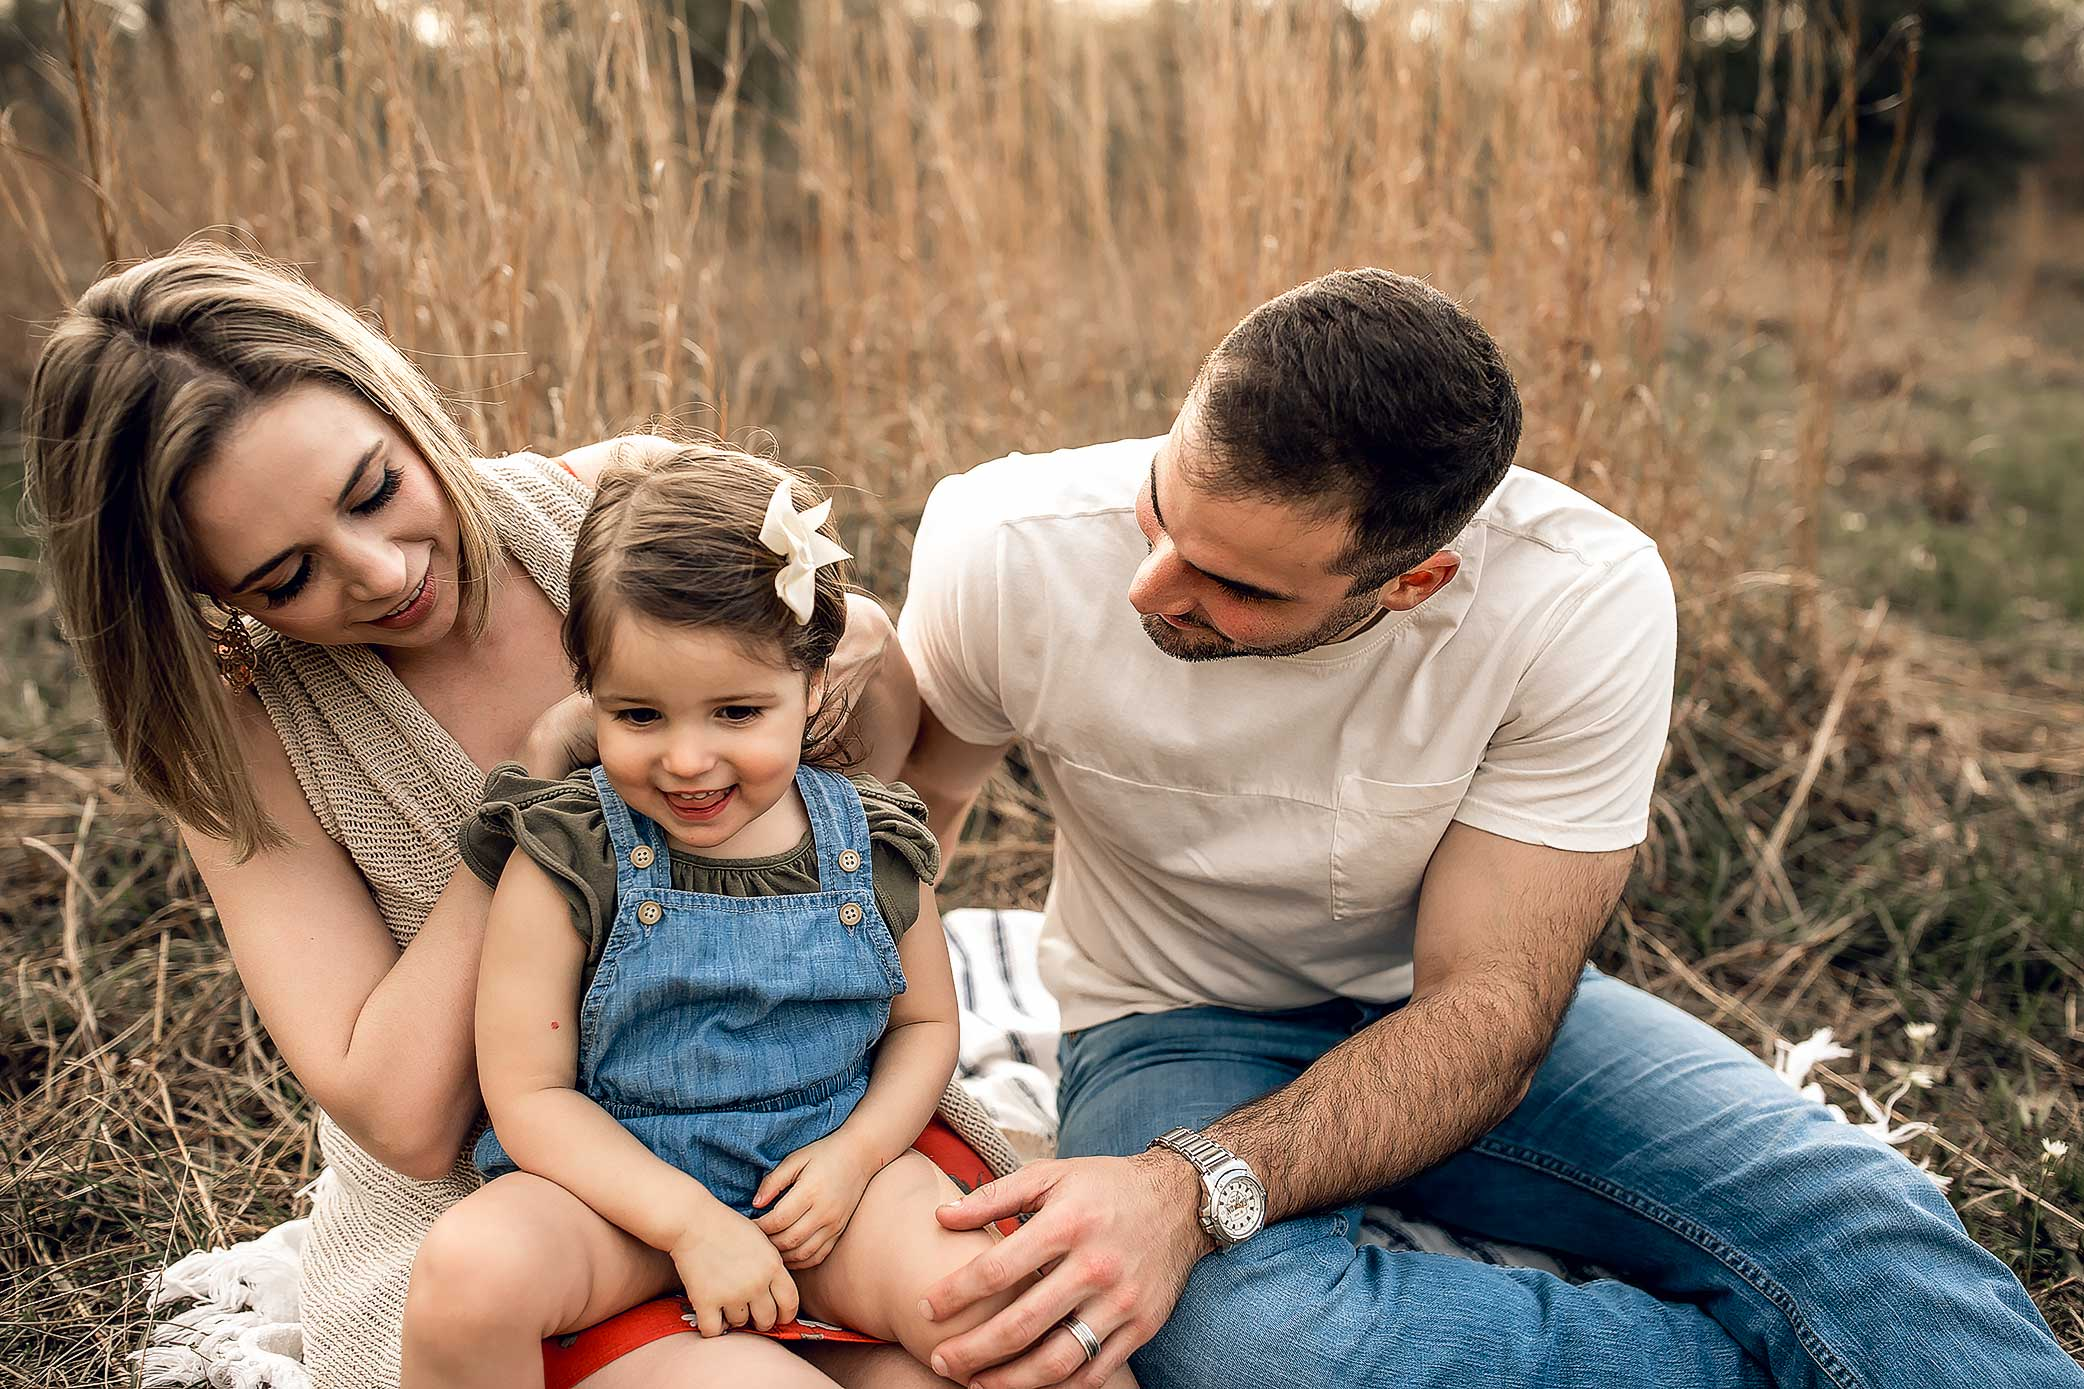 shelby-schiller-photography-sunset-family-pictures-spring-2019-5.jpg